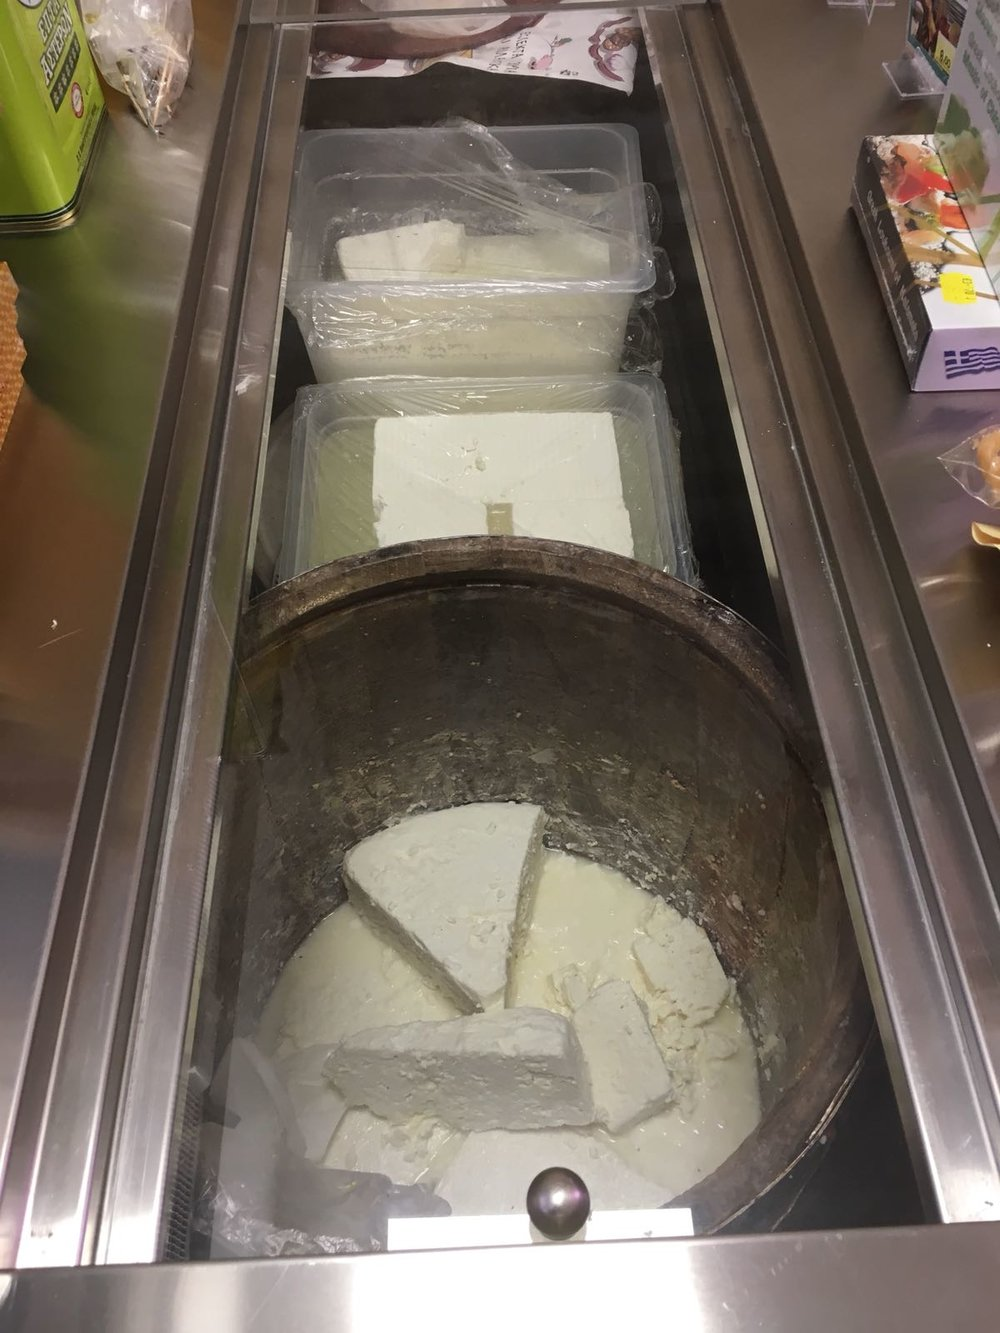 Feta was everywhere but where were the molds?